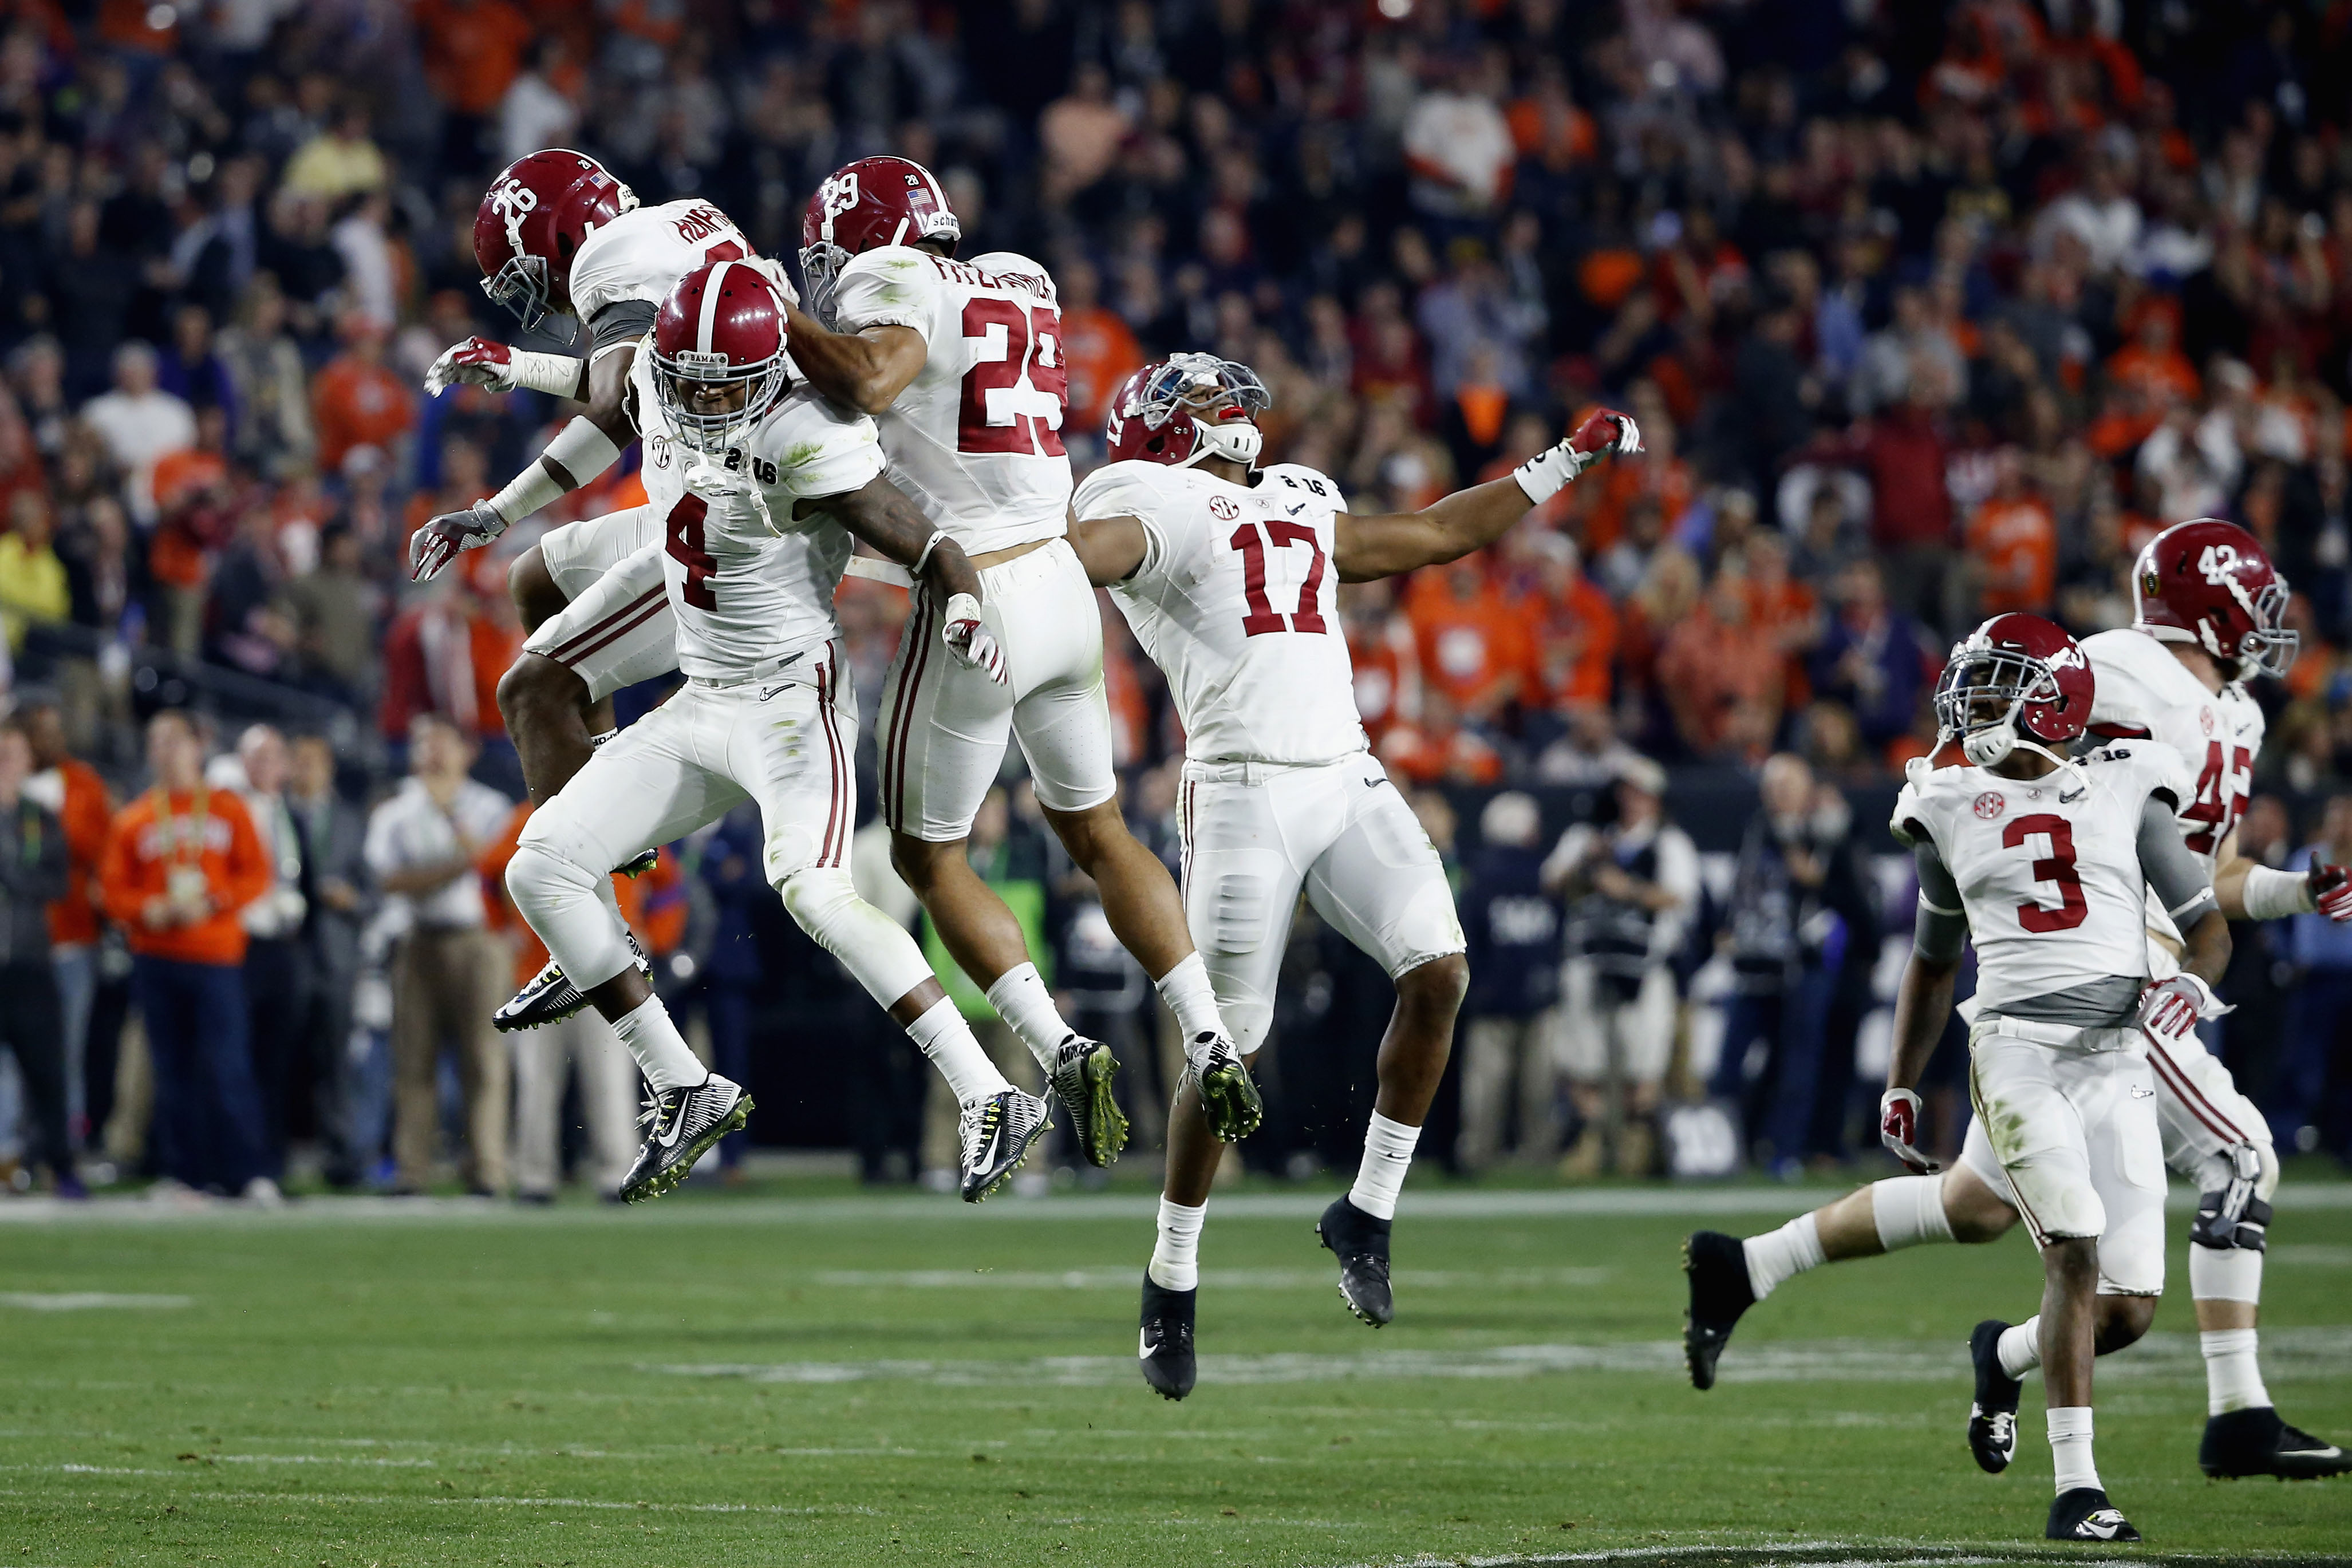 GLENDALE, AZ - JANUARY 11: Eddie Jackson #4 of the Alabama Crimson Tide celebrates with his teammates after a play against the Clemson Tigers during the 2016 College Football Playoff National Championship Game at University of Phoenix Stadium on January 11, 2016 in Glendale, Arizona. (Photo by Sean M. Haffey/Getty Images)